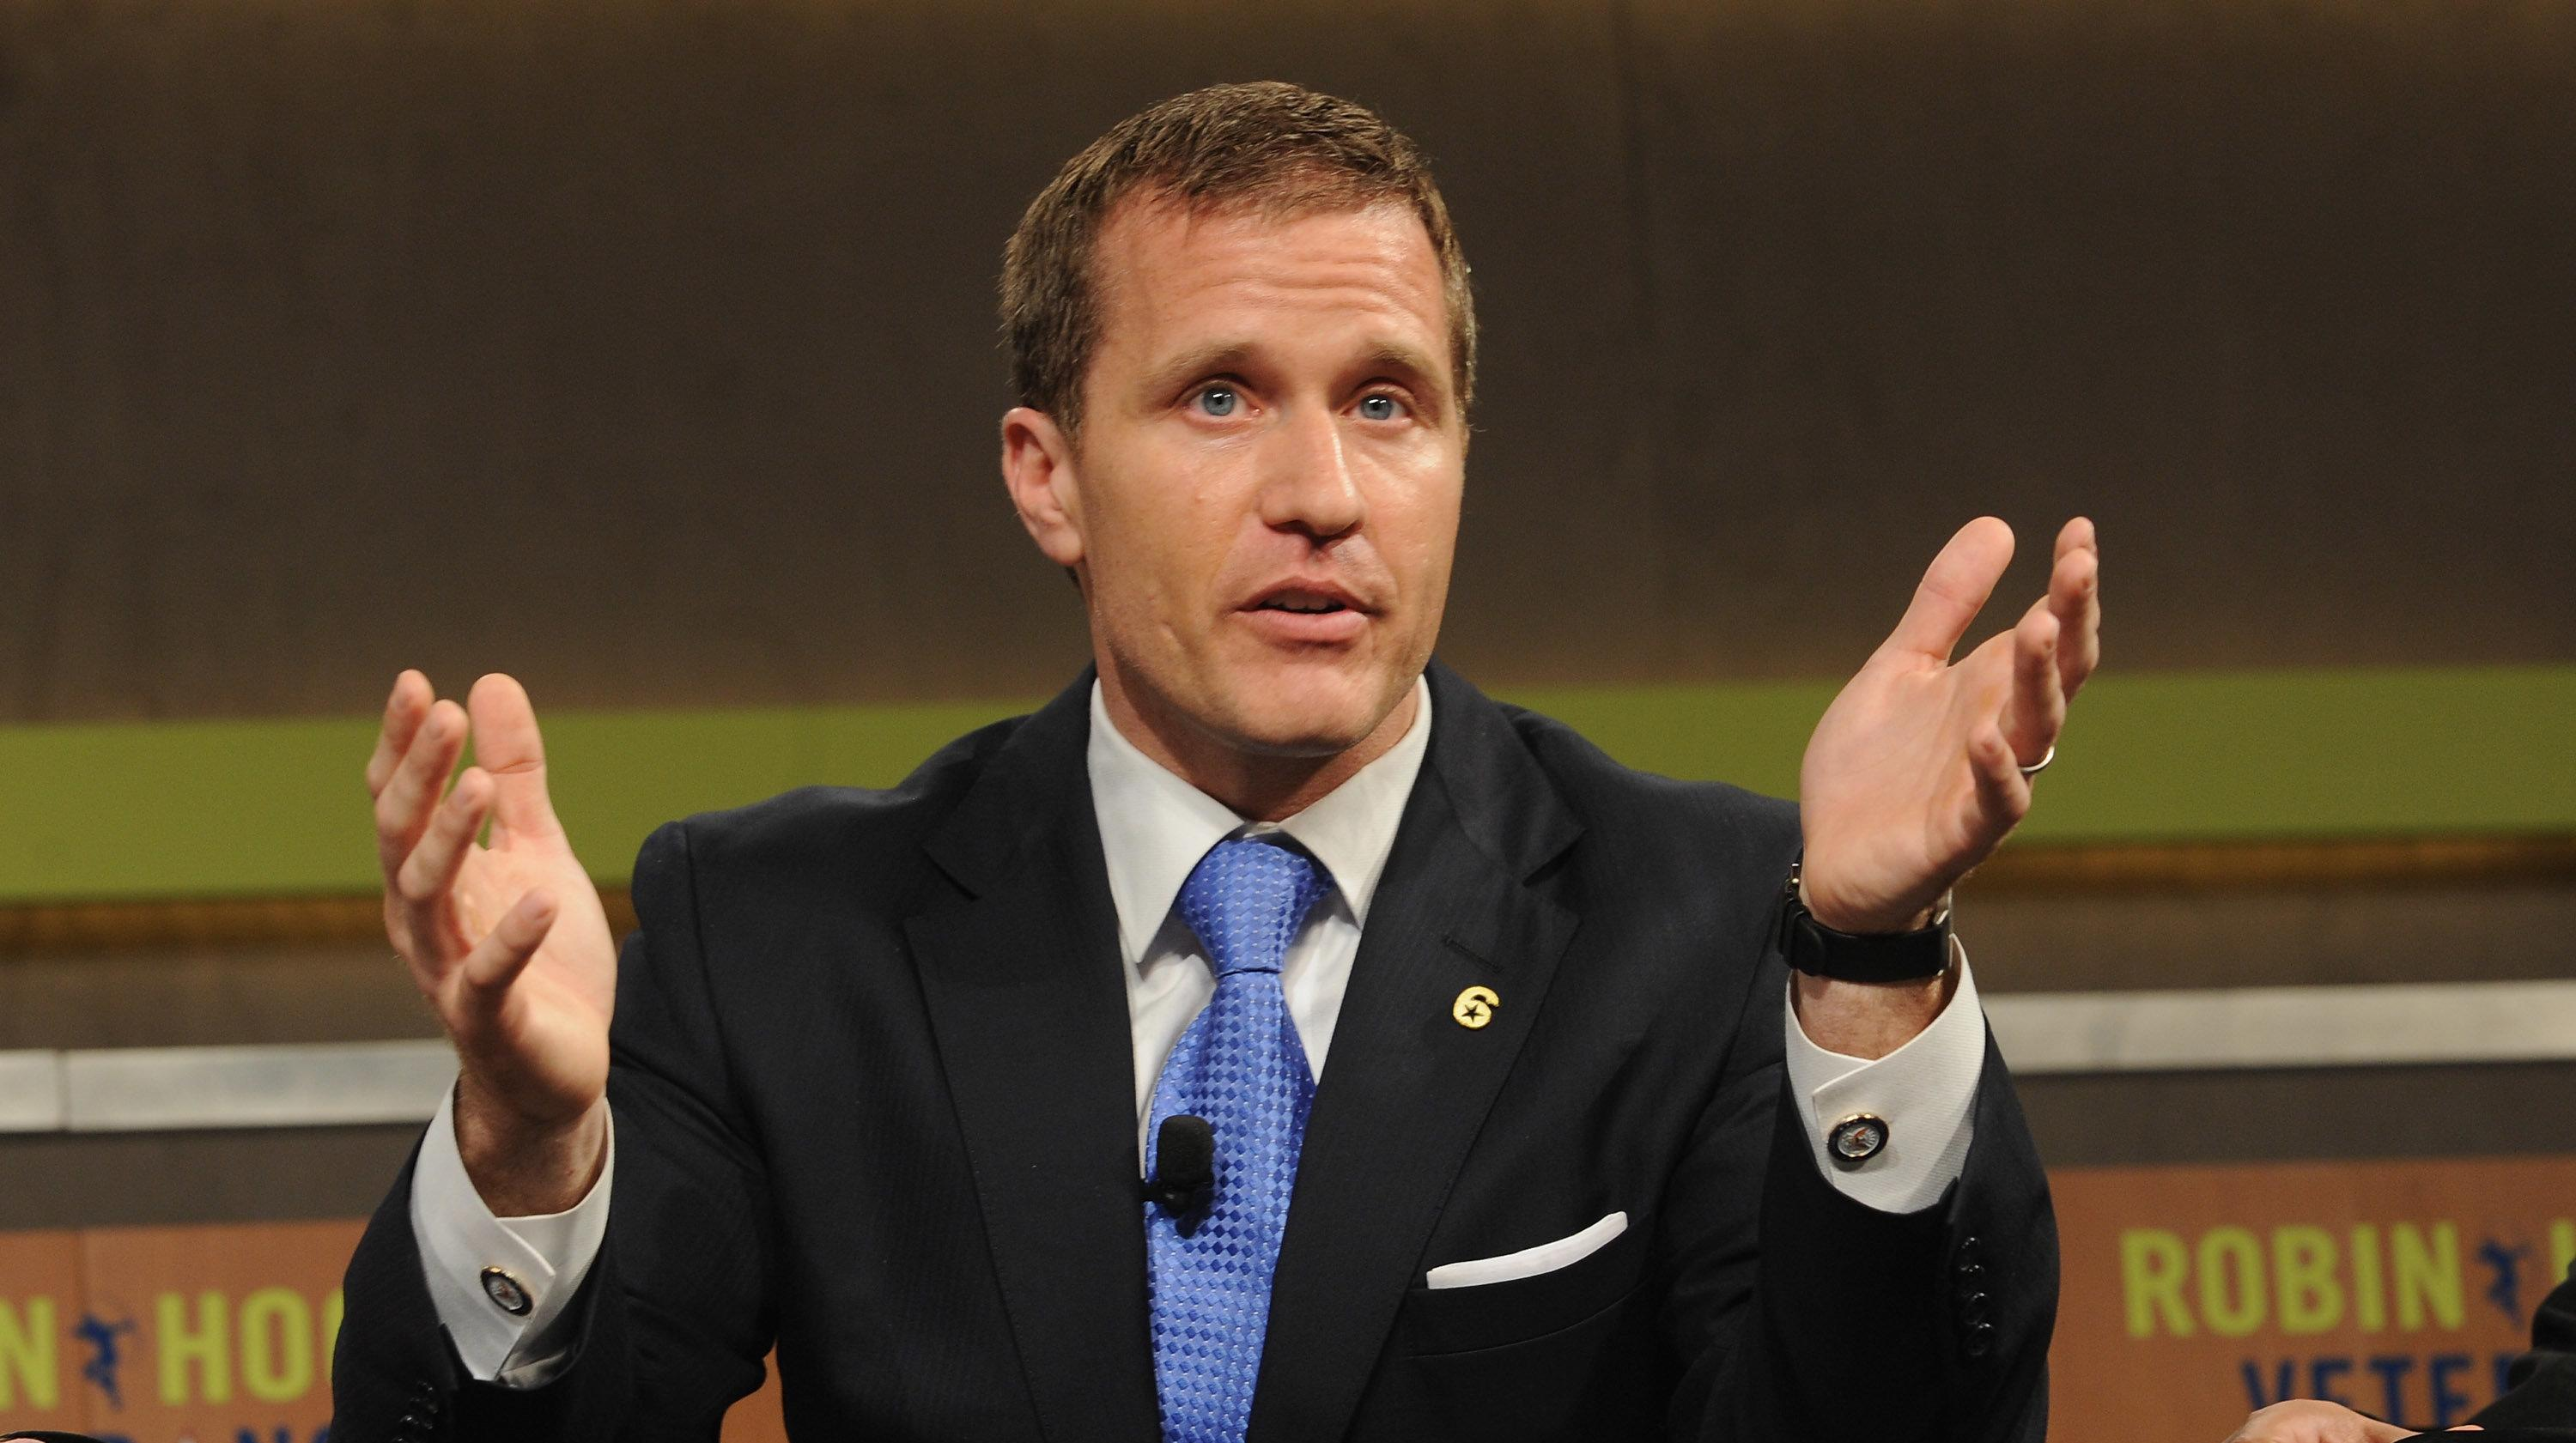 Missouri Congresswoman: Eric Greitens 'Is Unfit To Lead Our State'